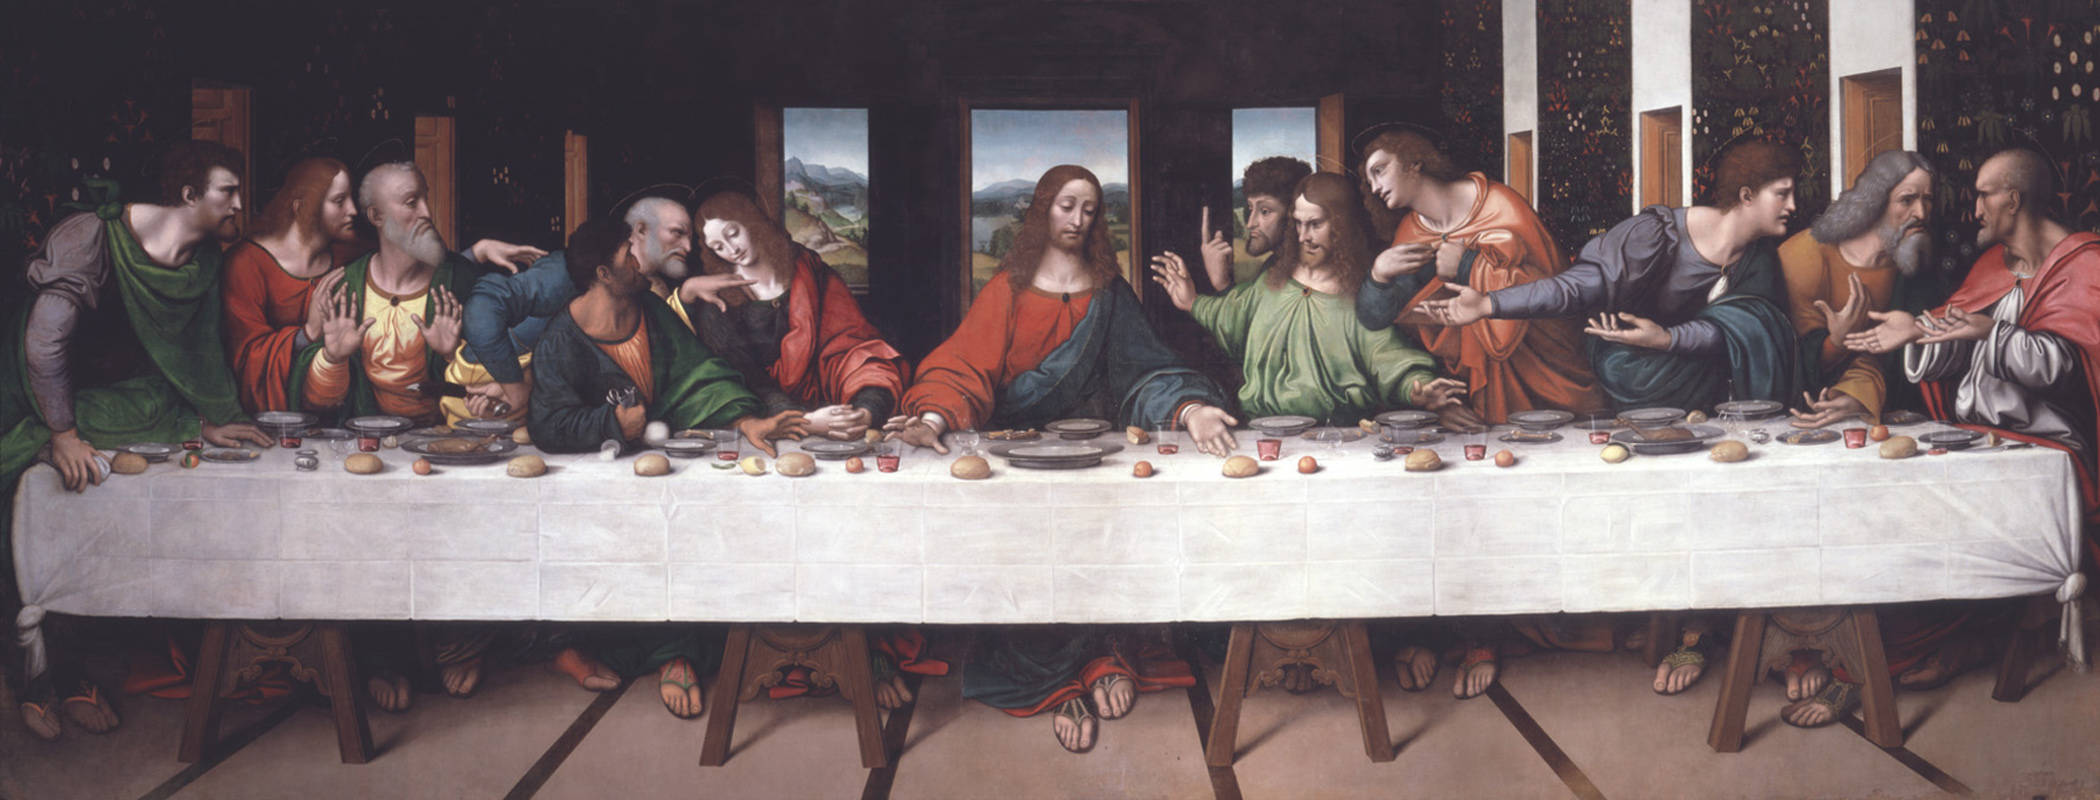 Last Supper - Wikipedia